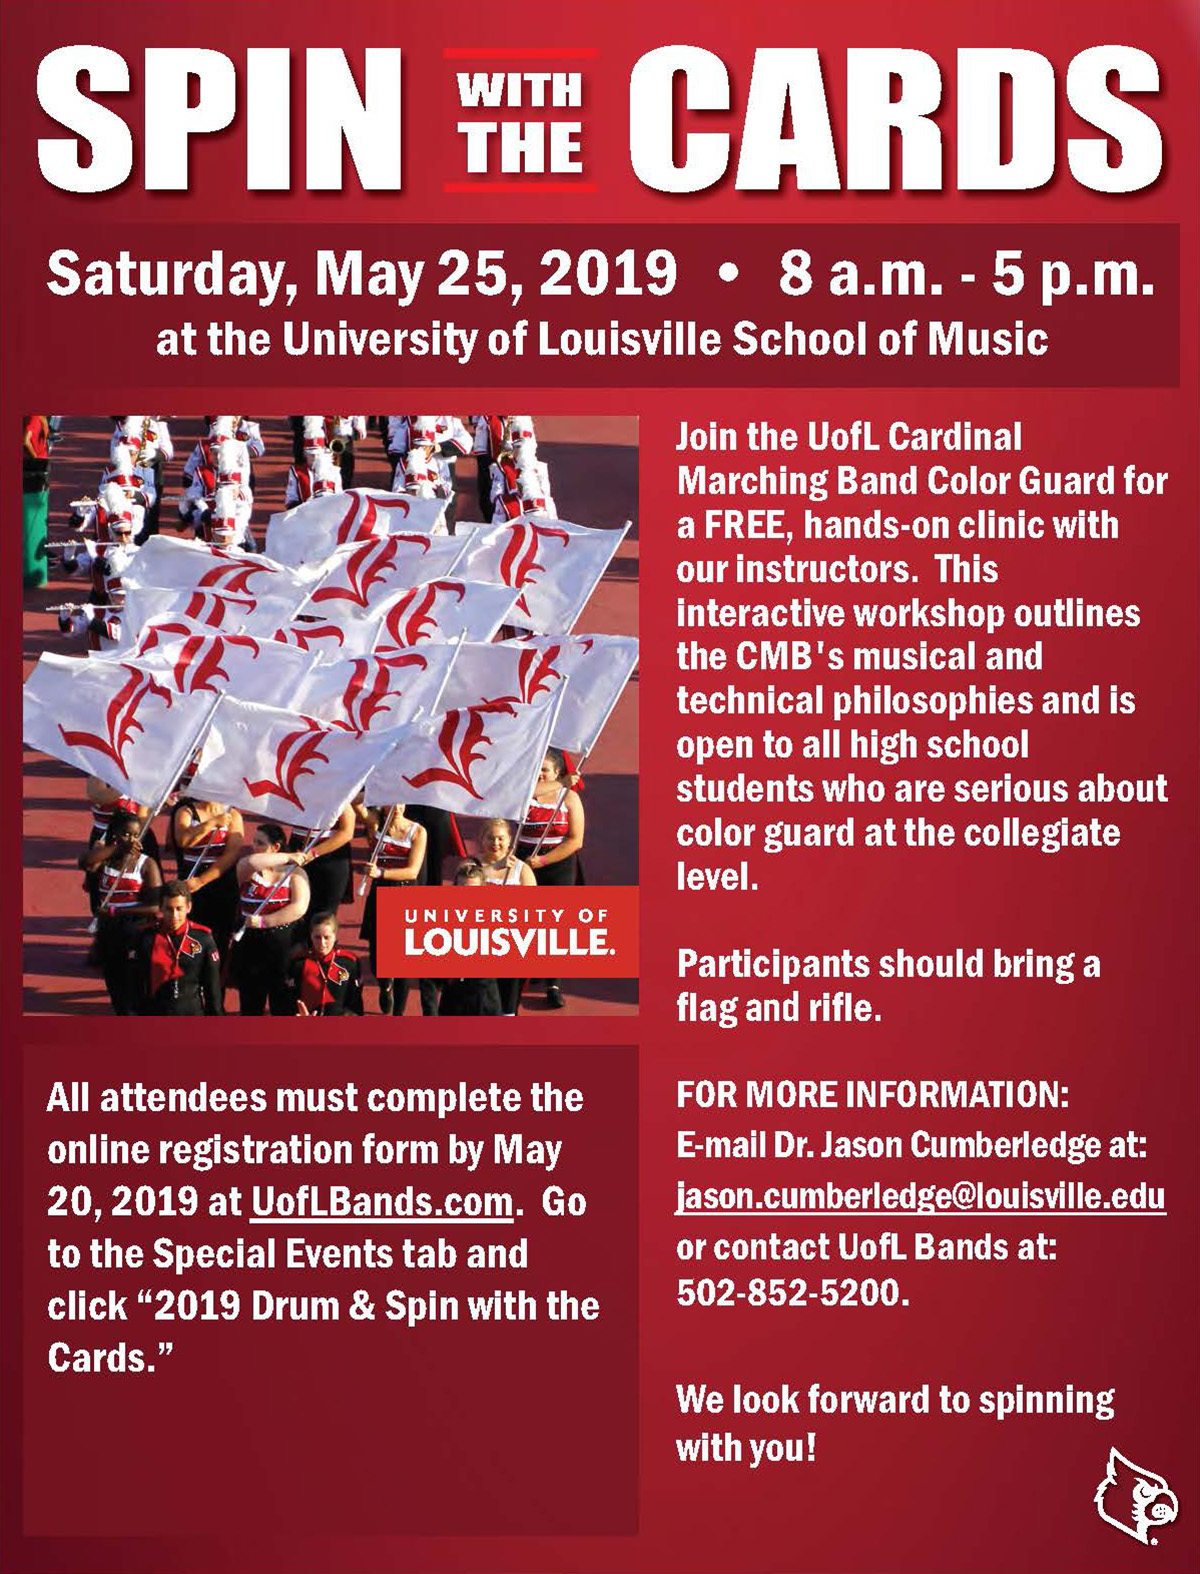 """Spin with the Cards"""" clinic 